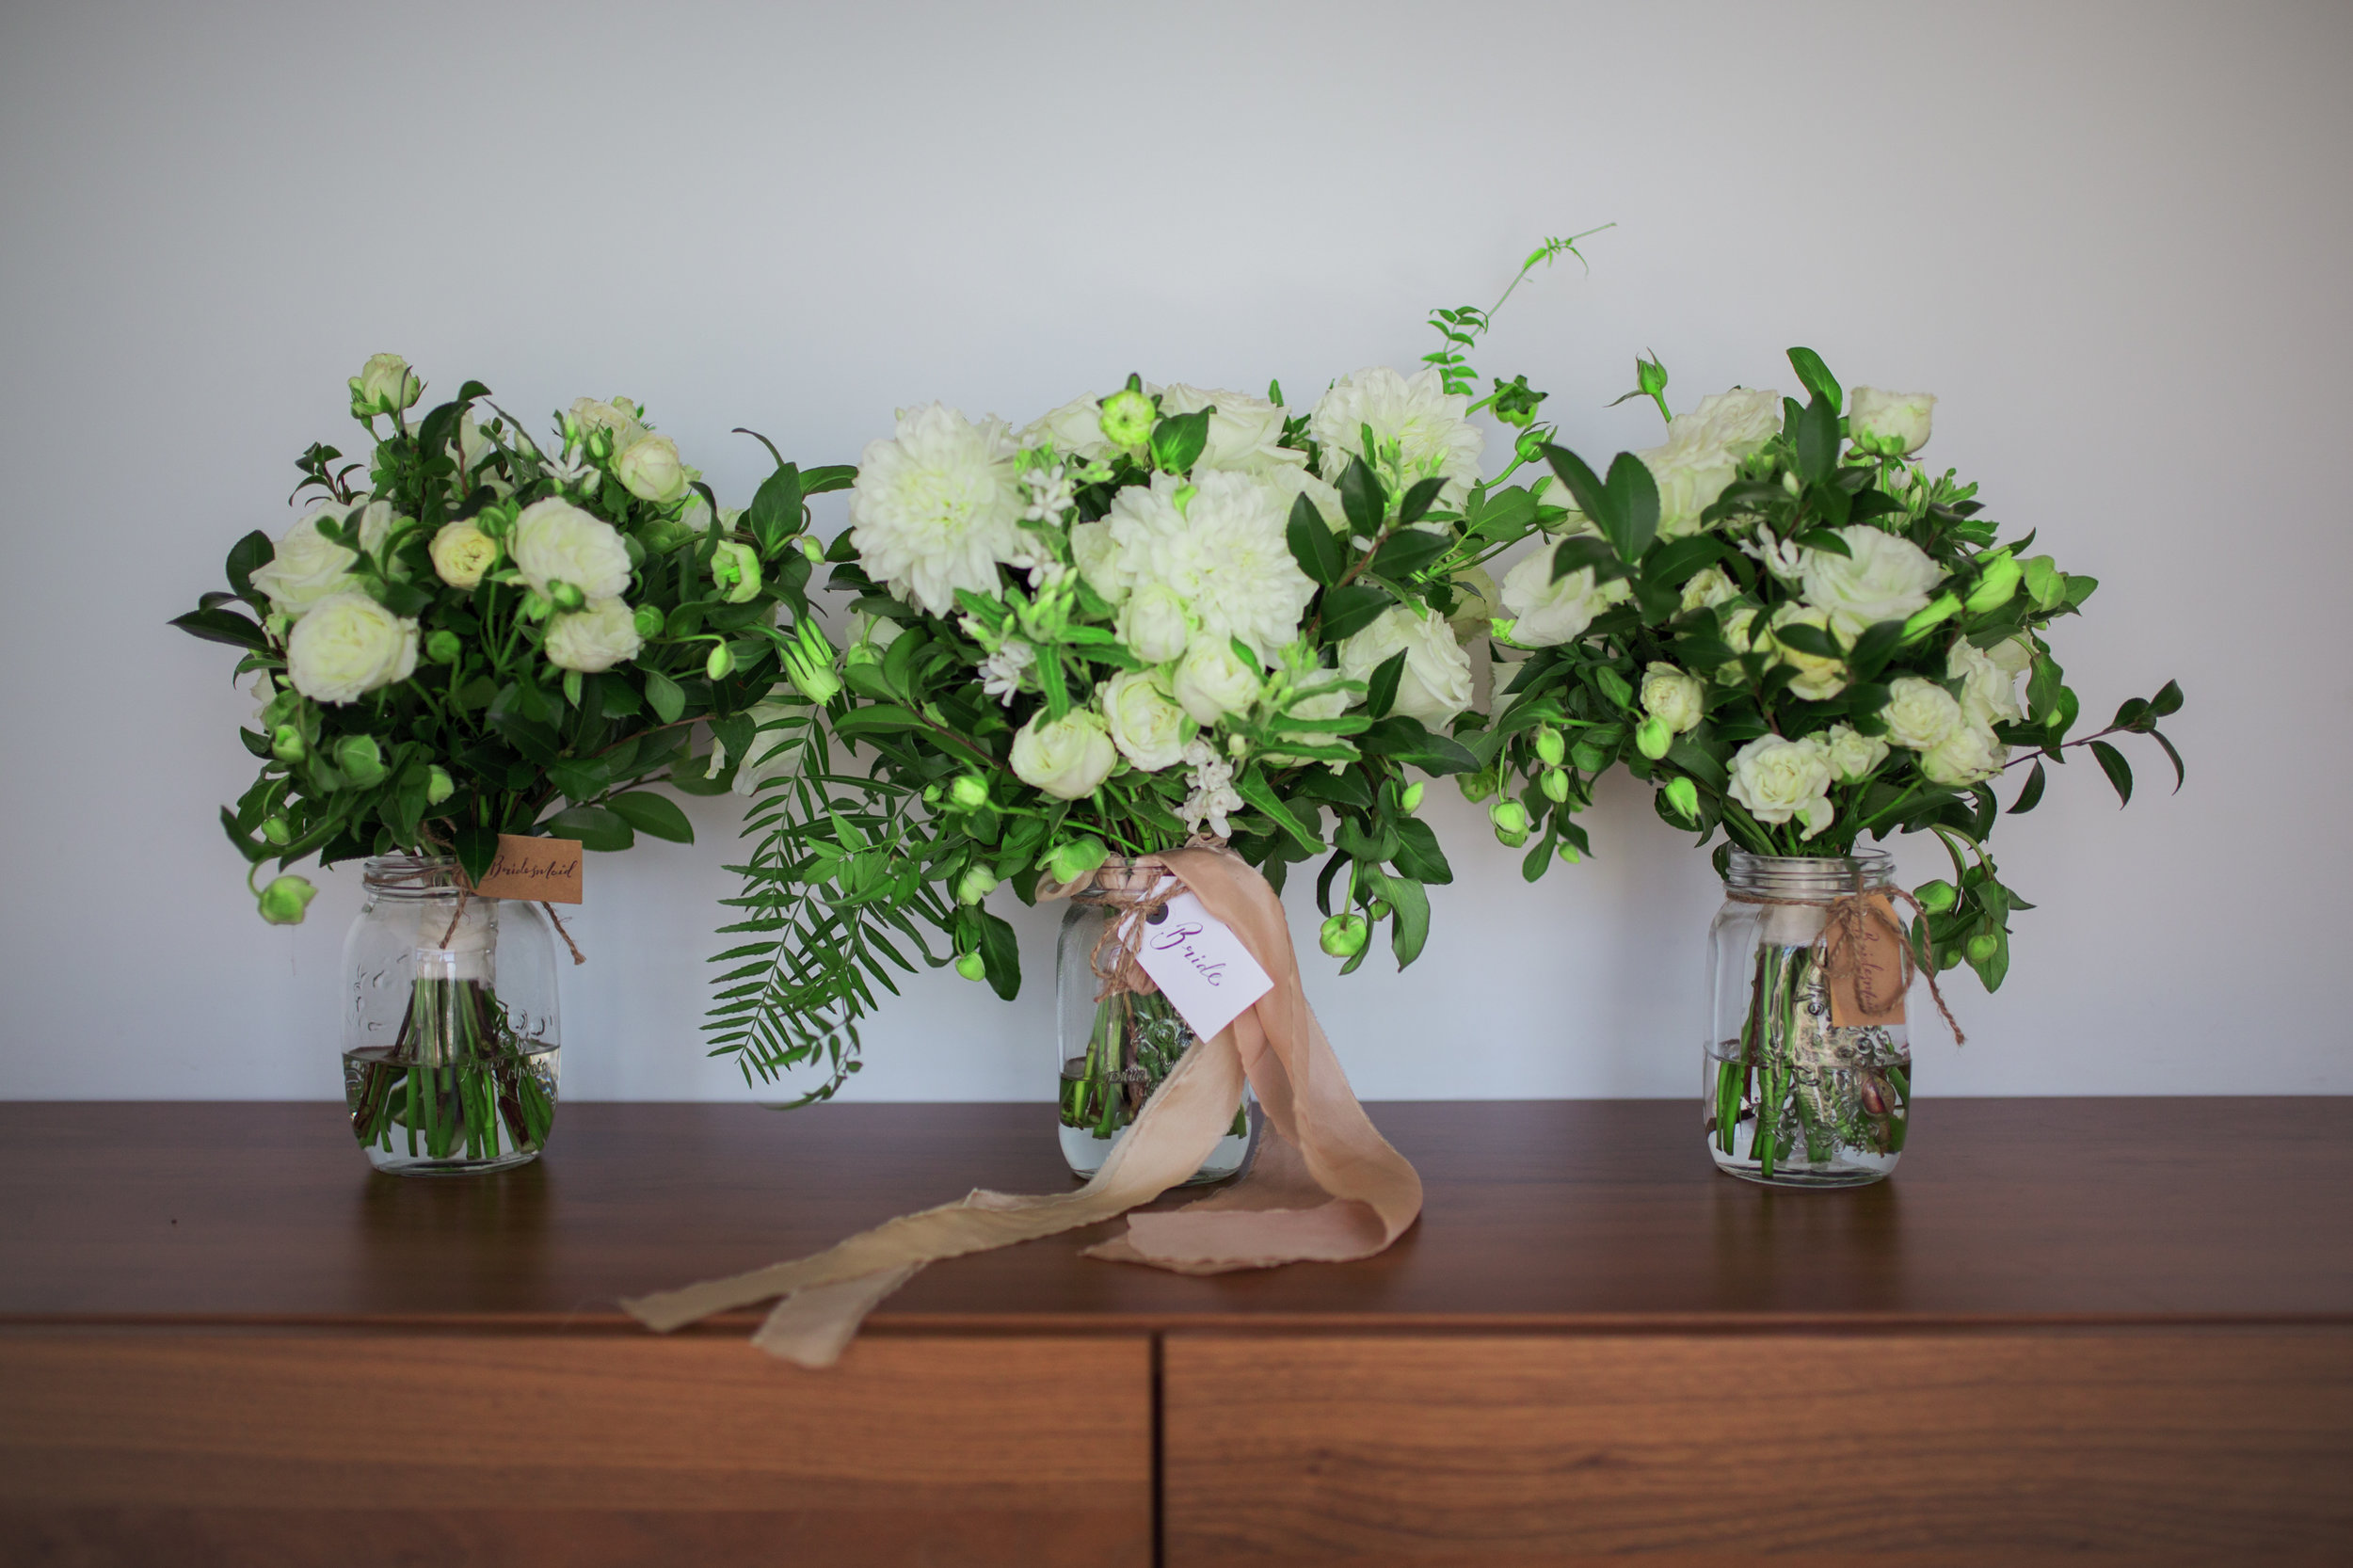 Lush-Organic-White-Bouquet-with-Greenery-Brisbane-Wedding-Florist-HT-Events.jpg